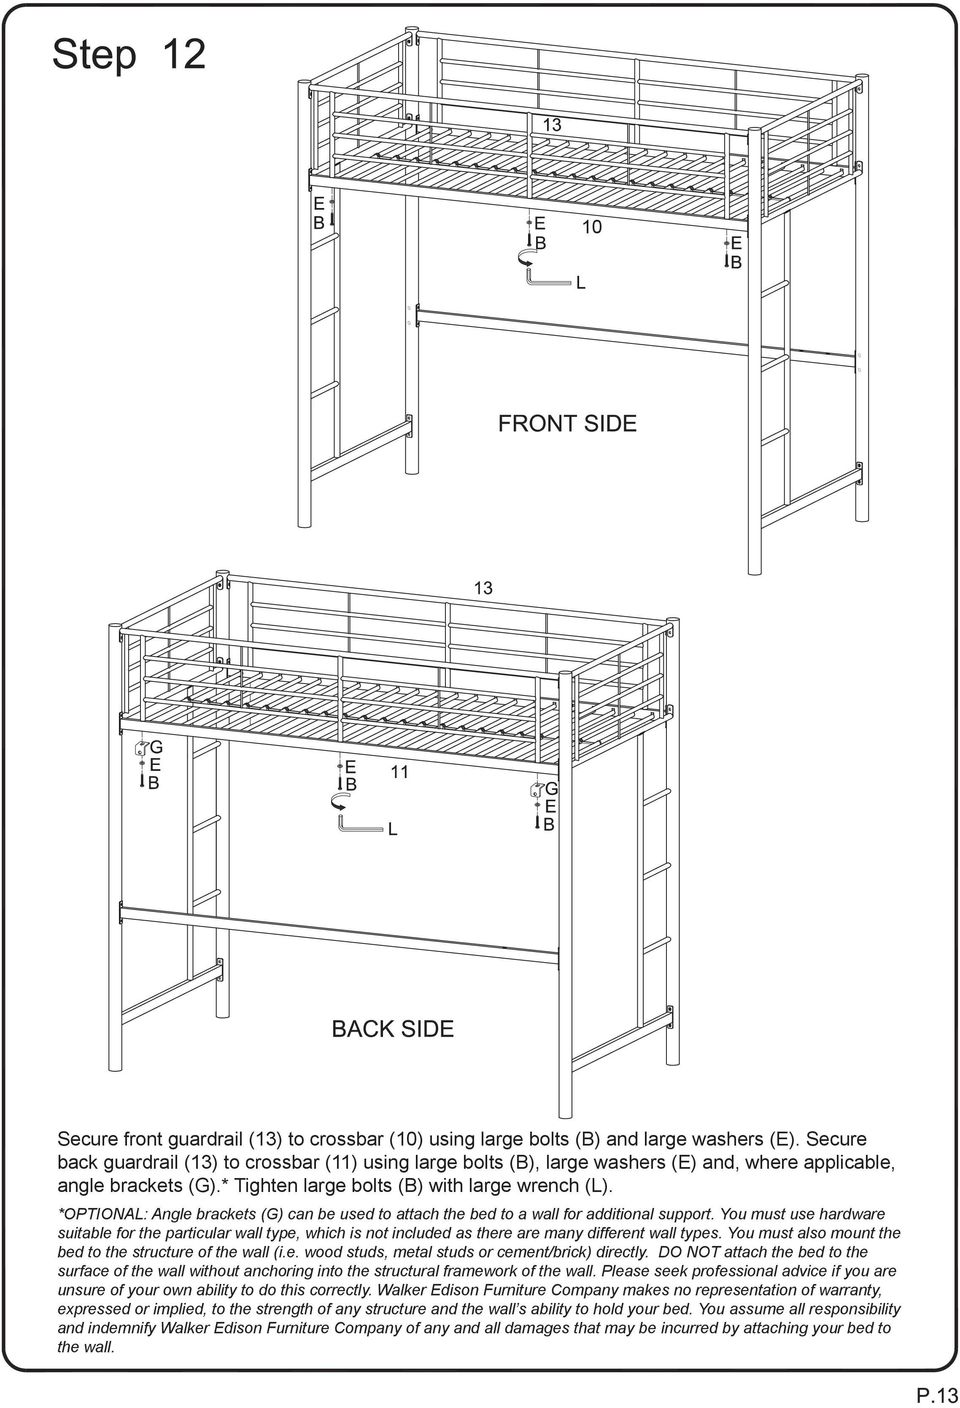 *OPTIONAL: Angle brackets (G) can be used to attach the bed to a wall for additional support.